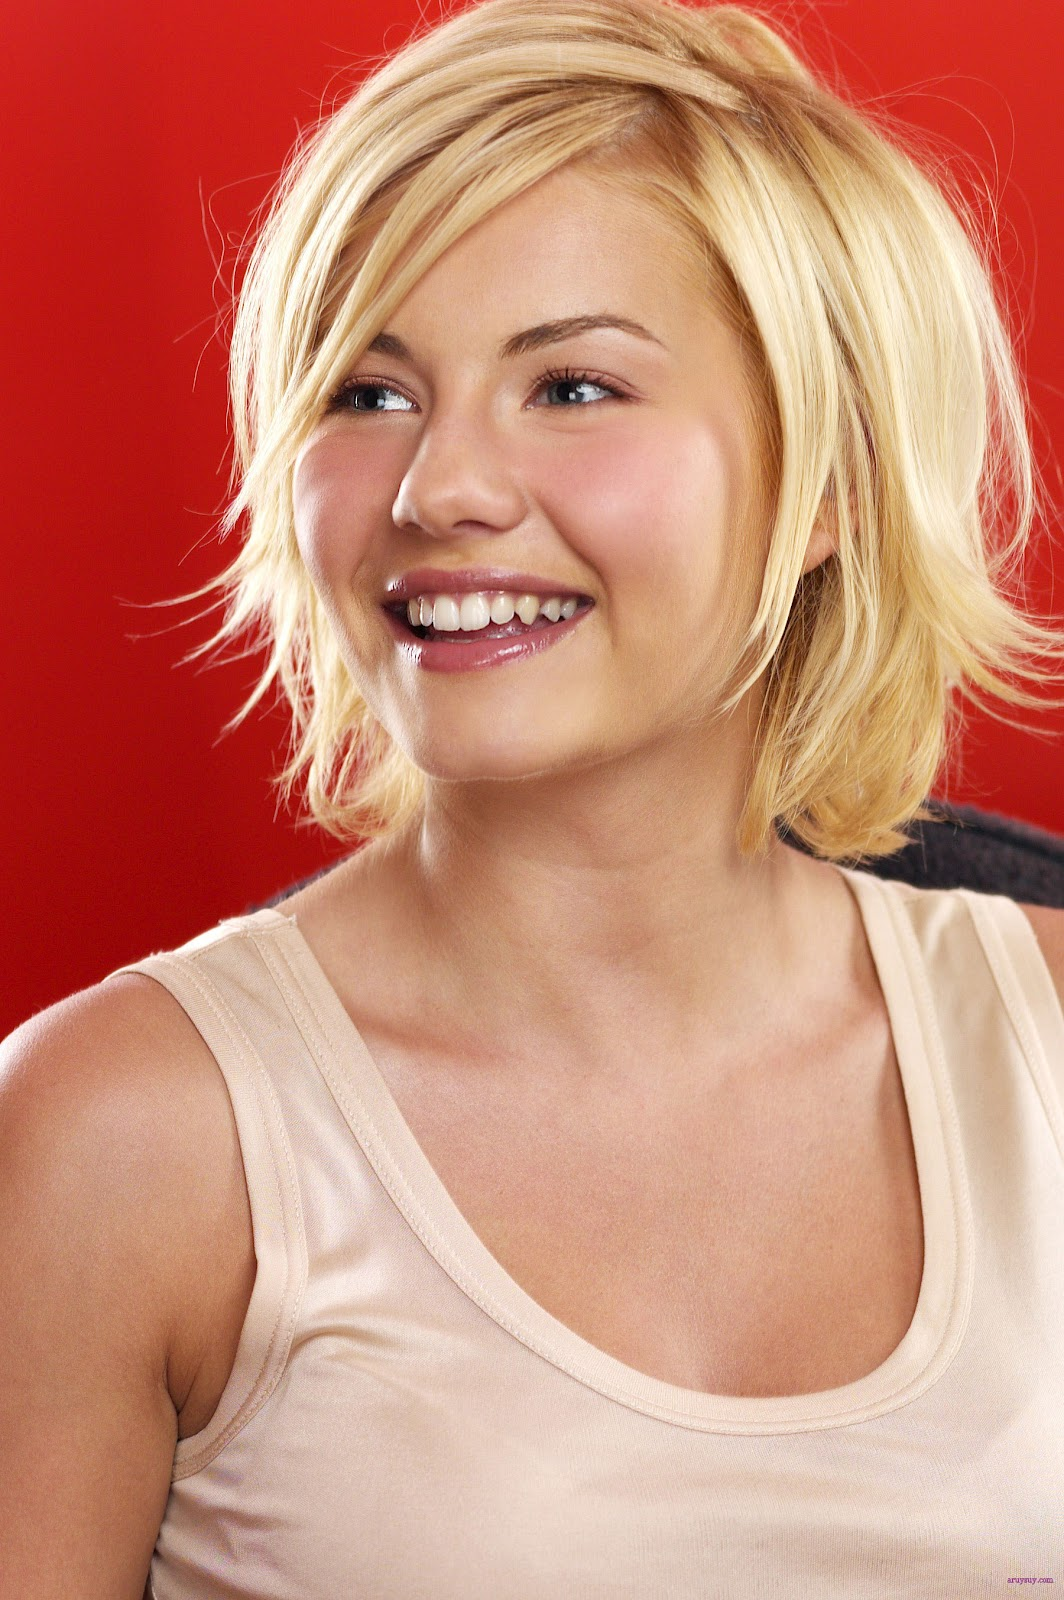 Elisha Cuthbert Latest Photos: Elisha Cuthbert From The Girl Next Door Part3